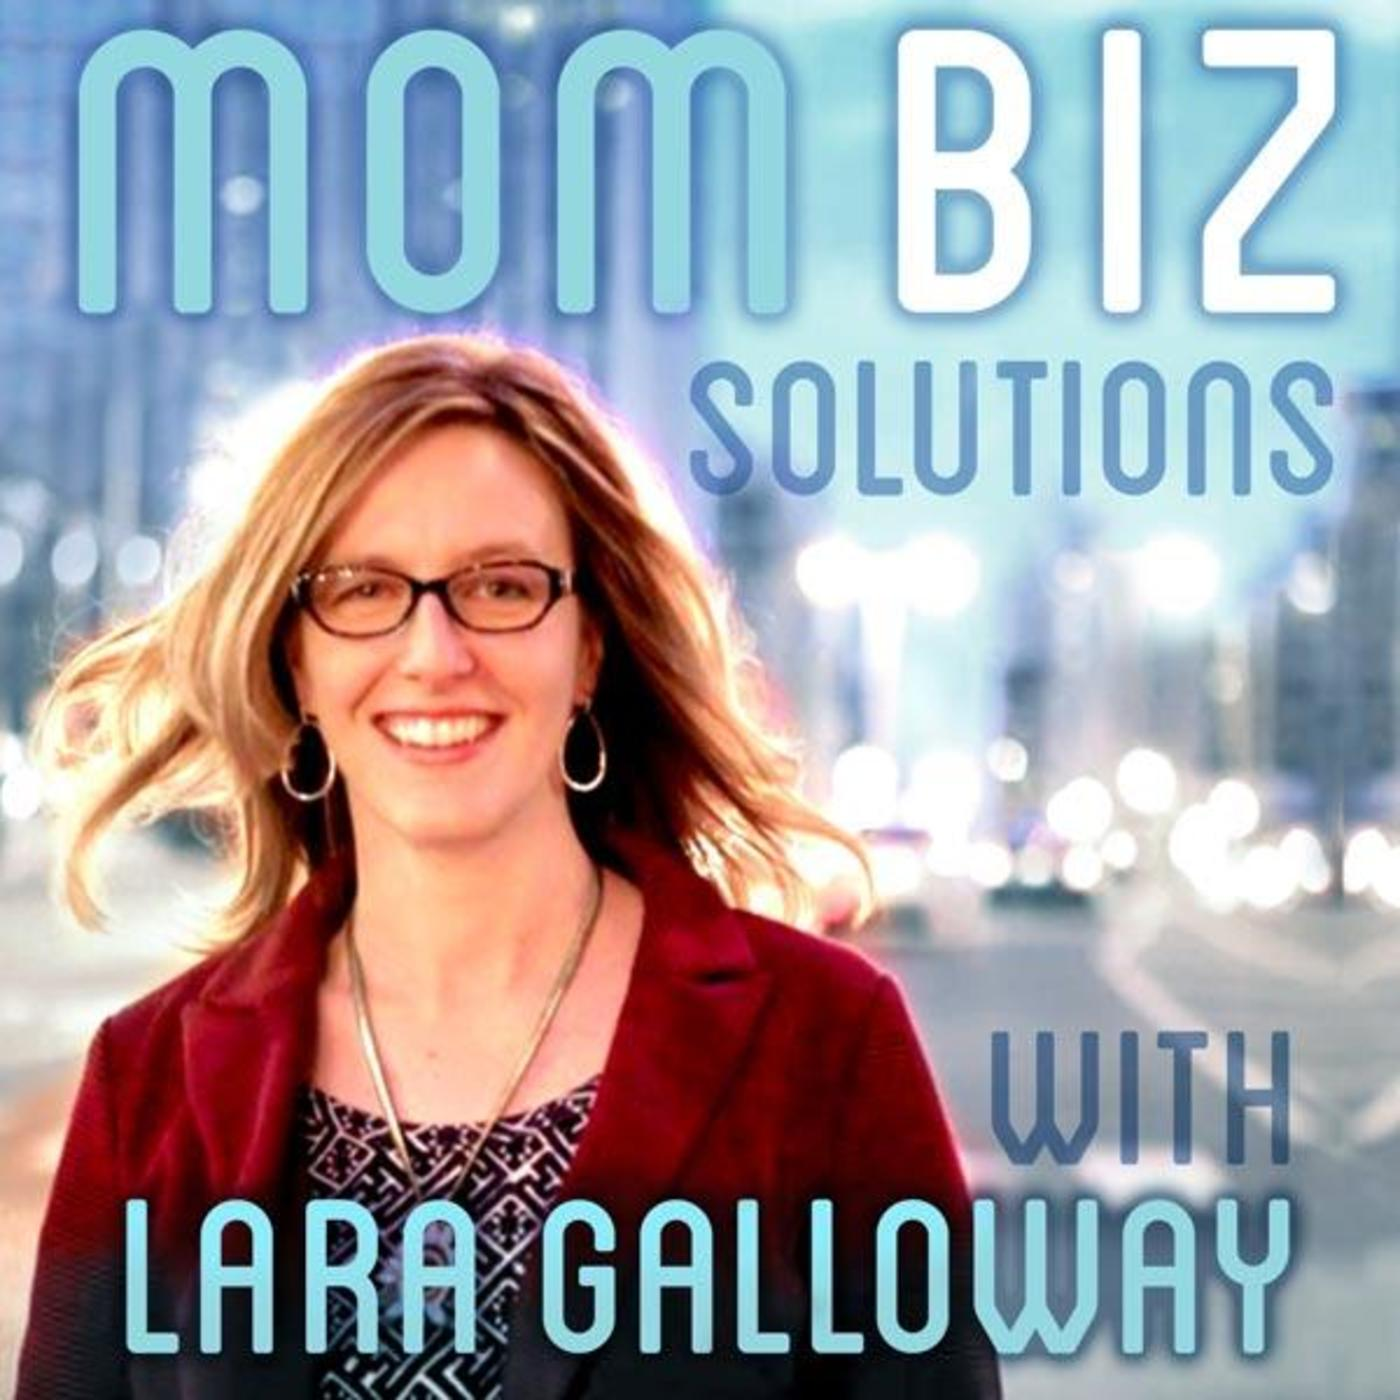 Mom Biz Solutions with Lara Galloway, The Mom Biz Coach